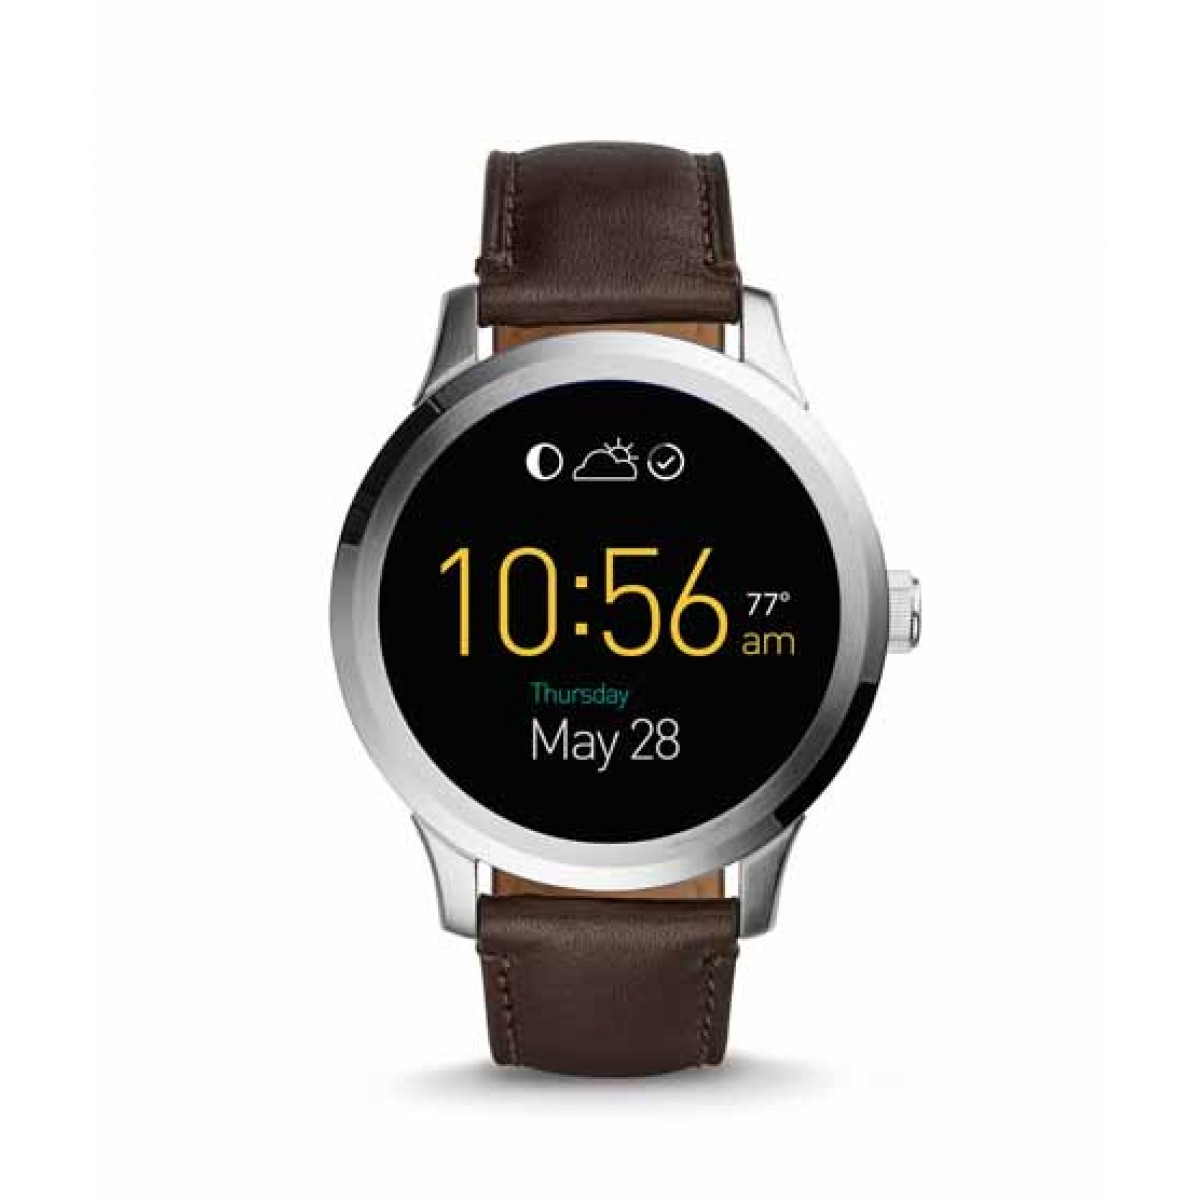 Fossil Q Founder Digital Display Brown Leather Men's Watch (FTW20011P)